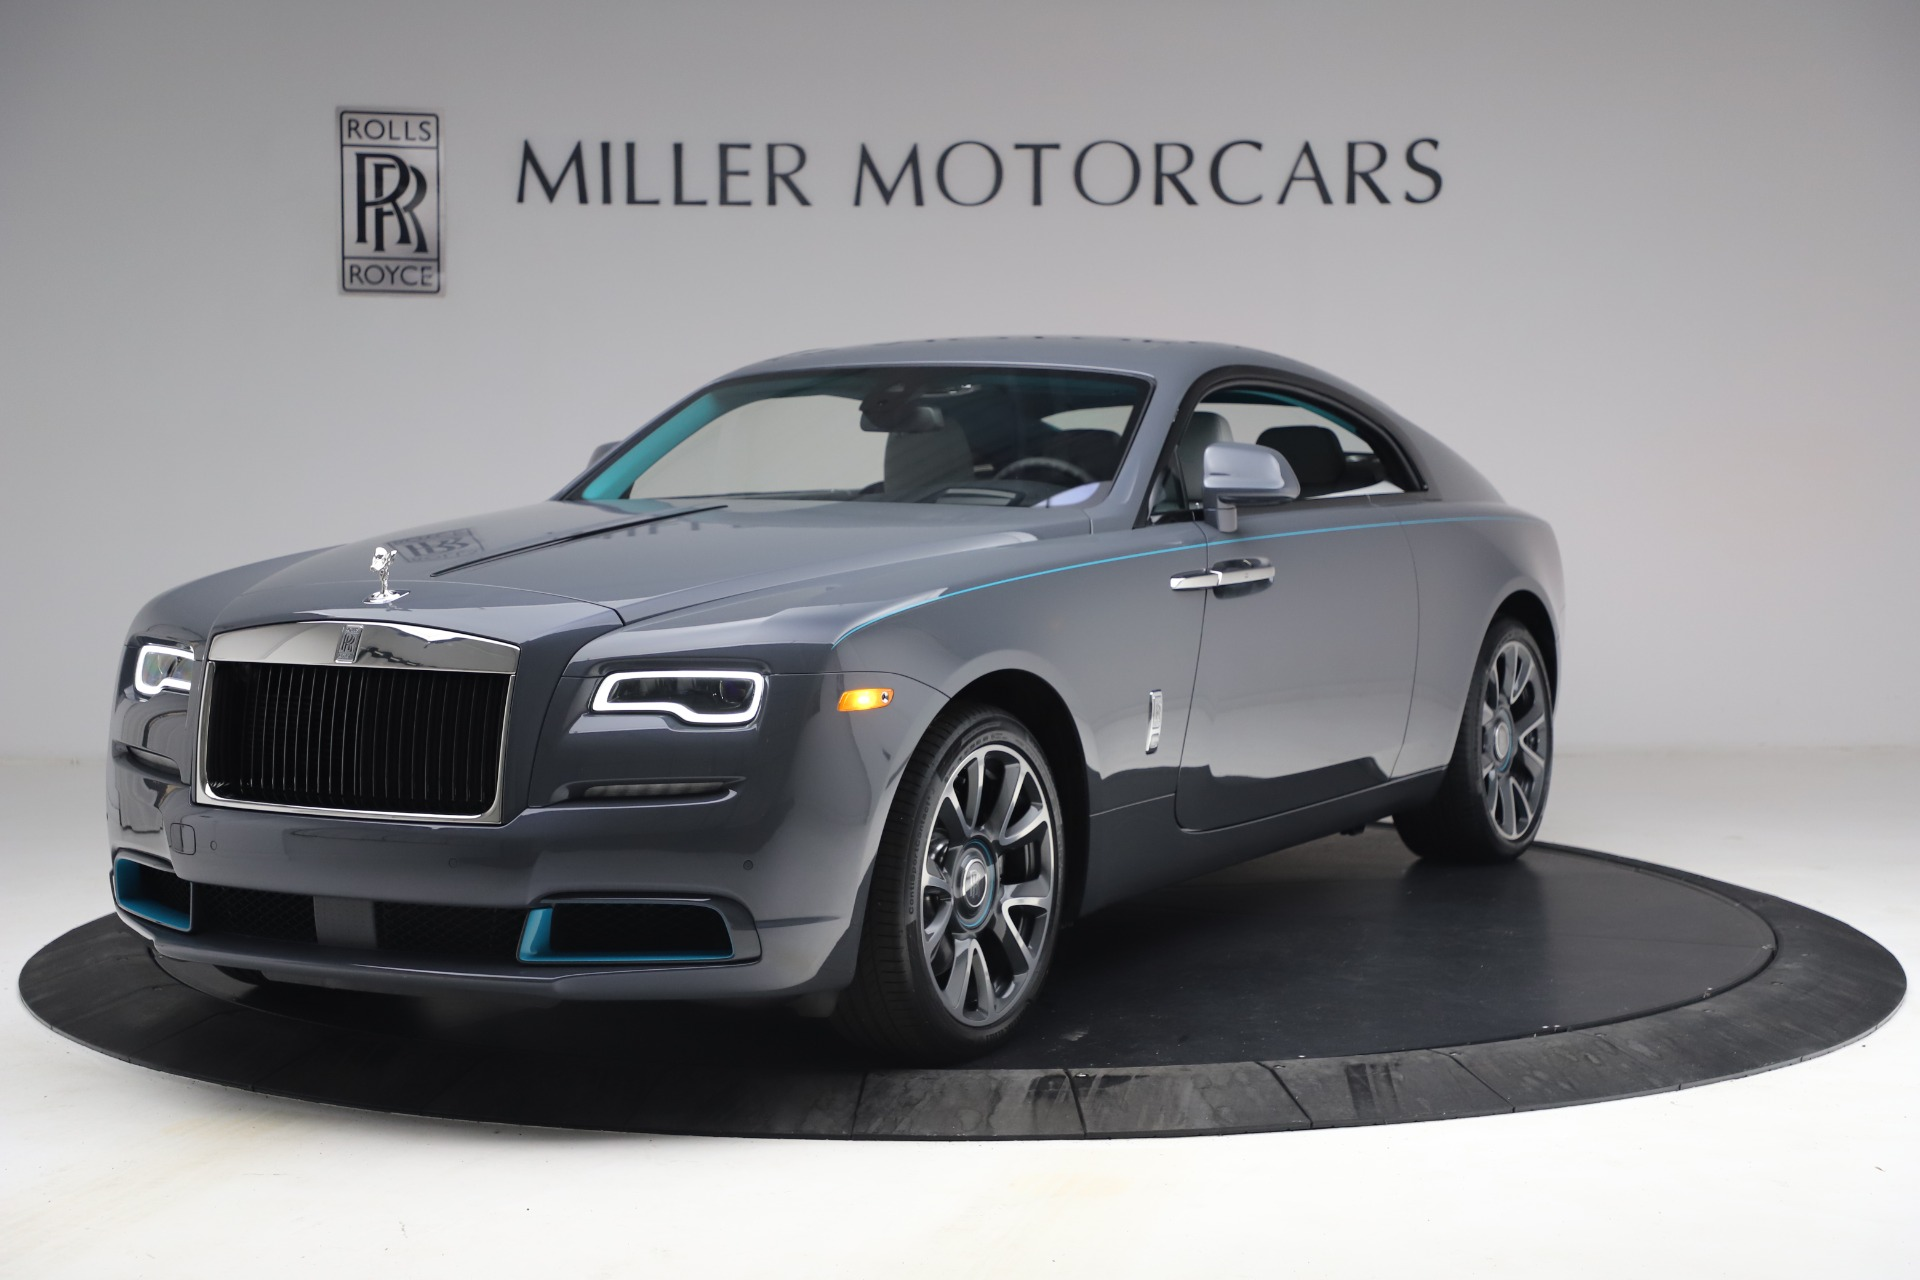 Used 2021 Rolls-Royce Wraith KRYPTOS for sale $444,275 at McLaren Greenwich in Greenwich CT 06830 1